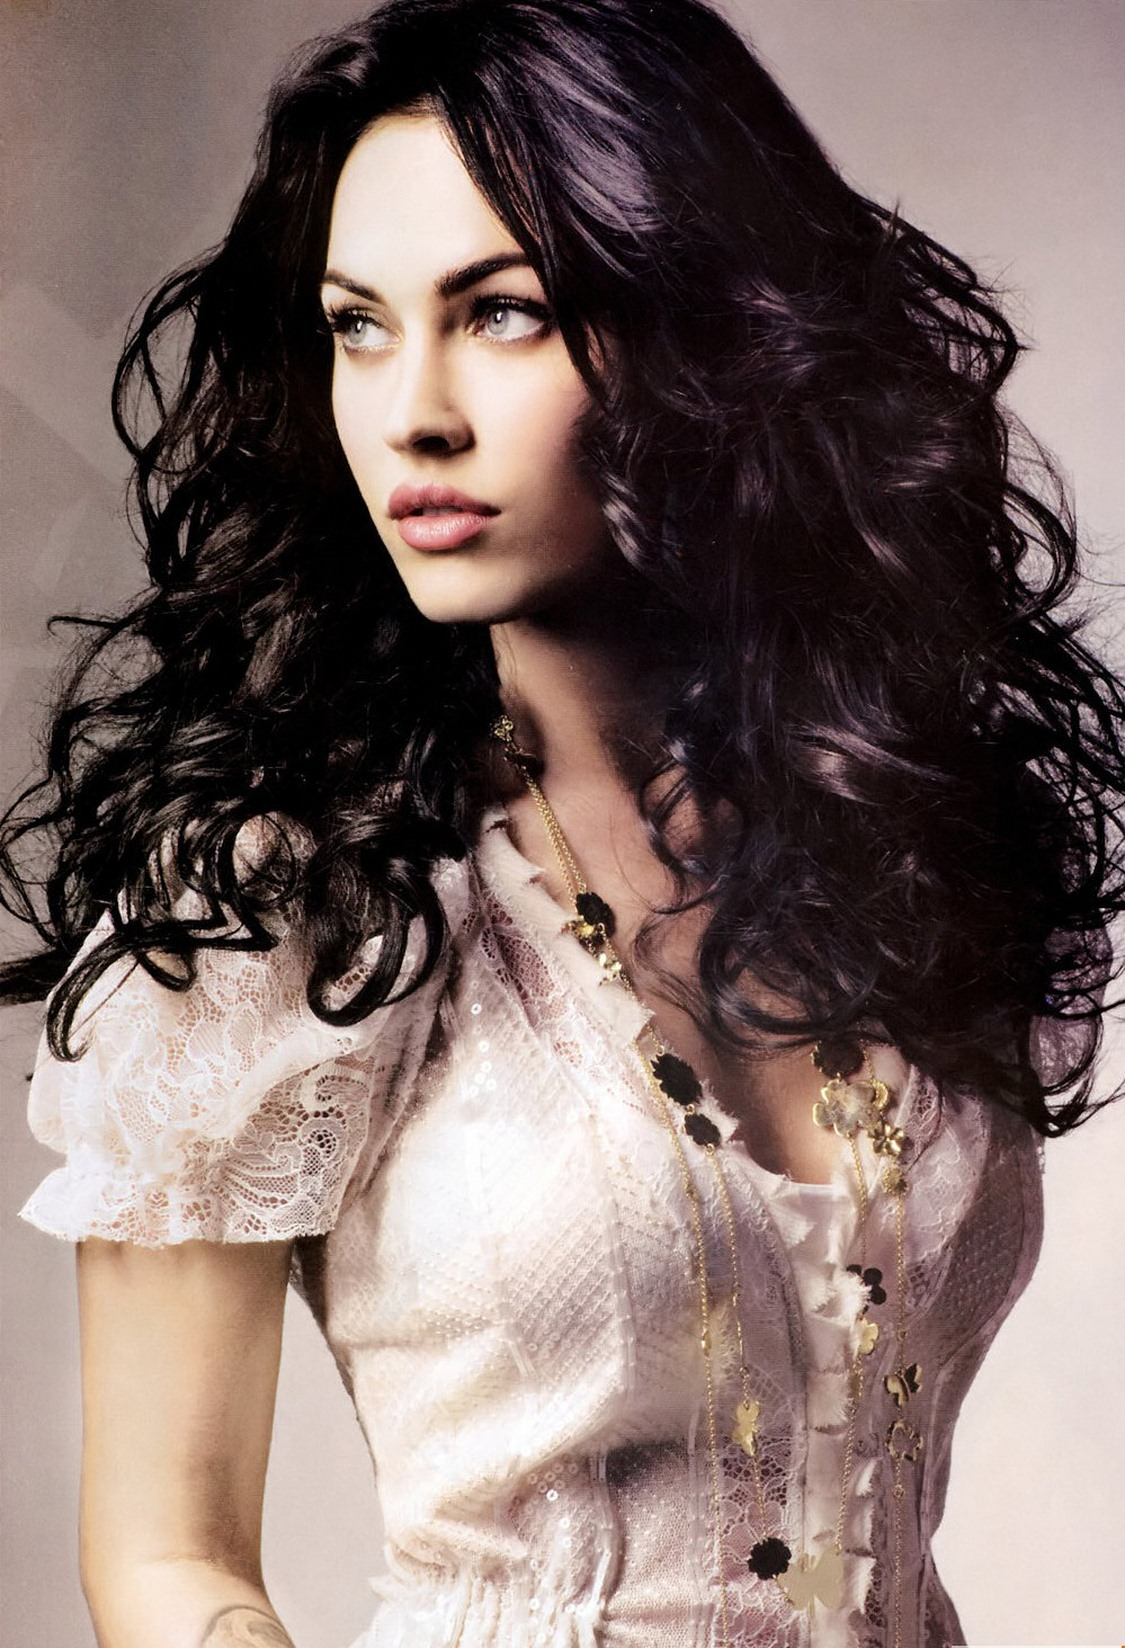 Megan Fox photo #70061